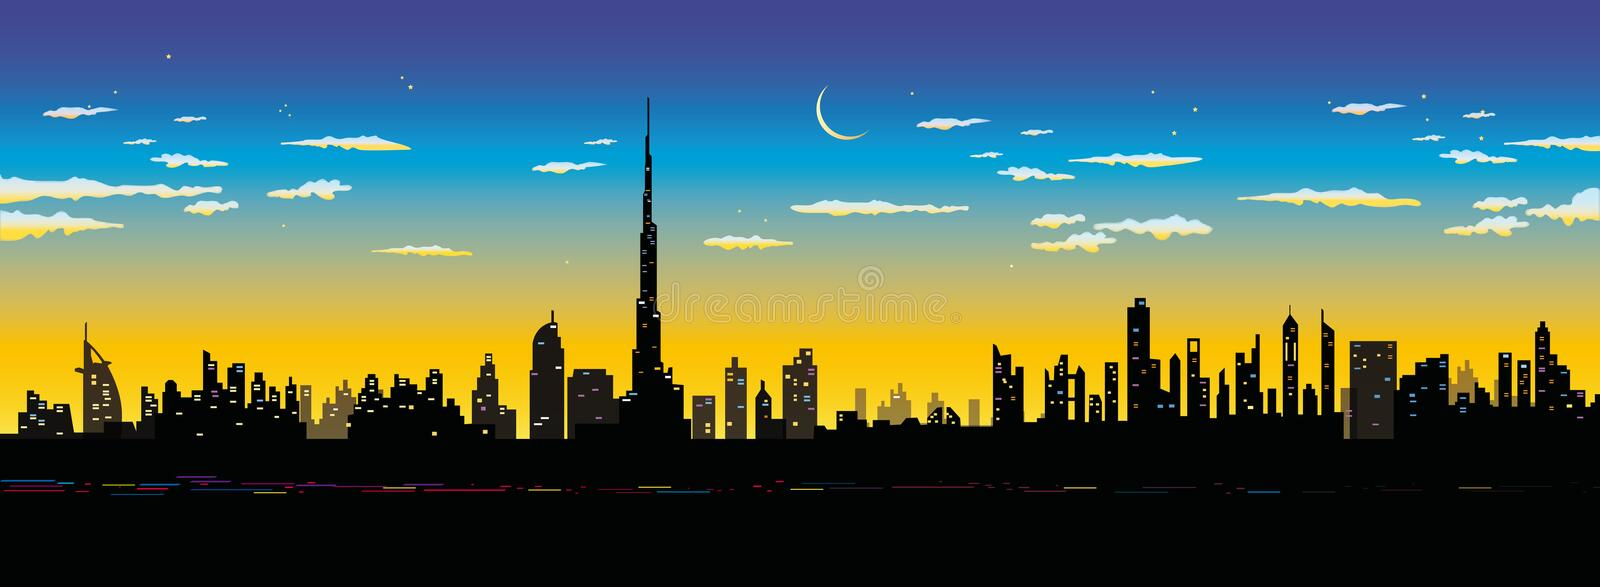 Dubai stad stock illustrationer